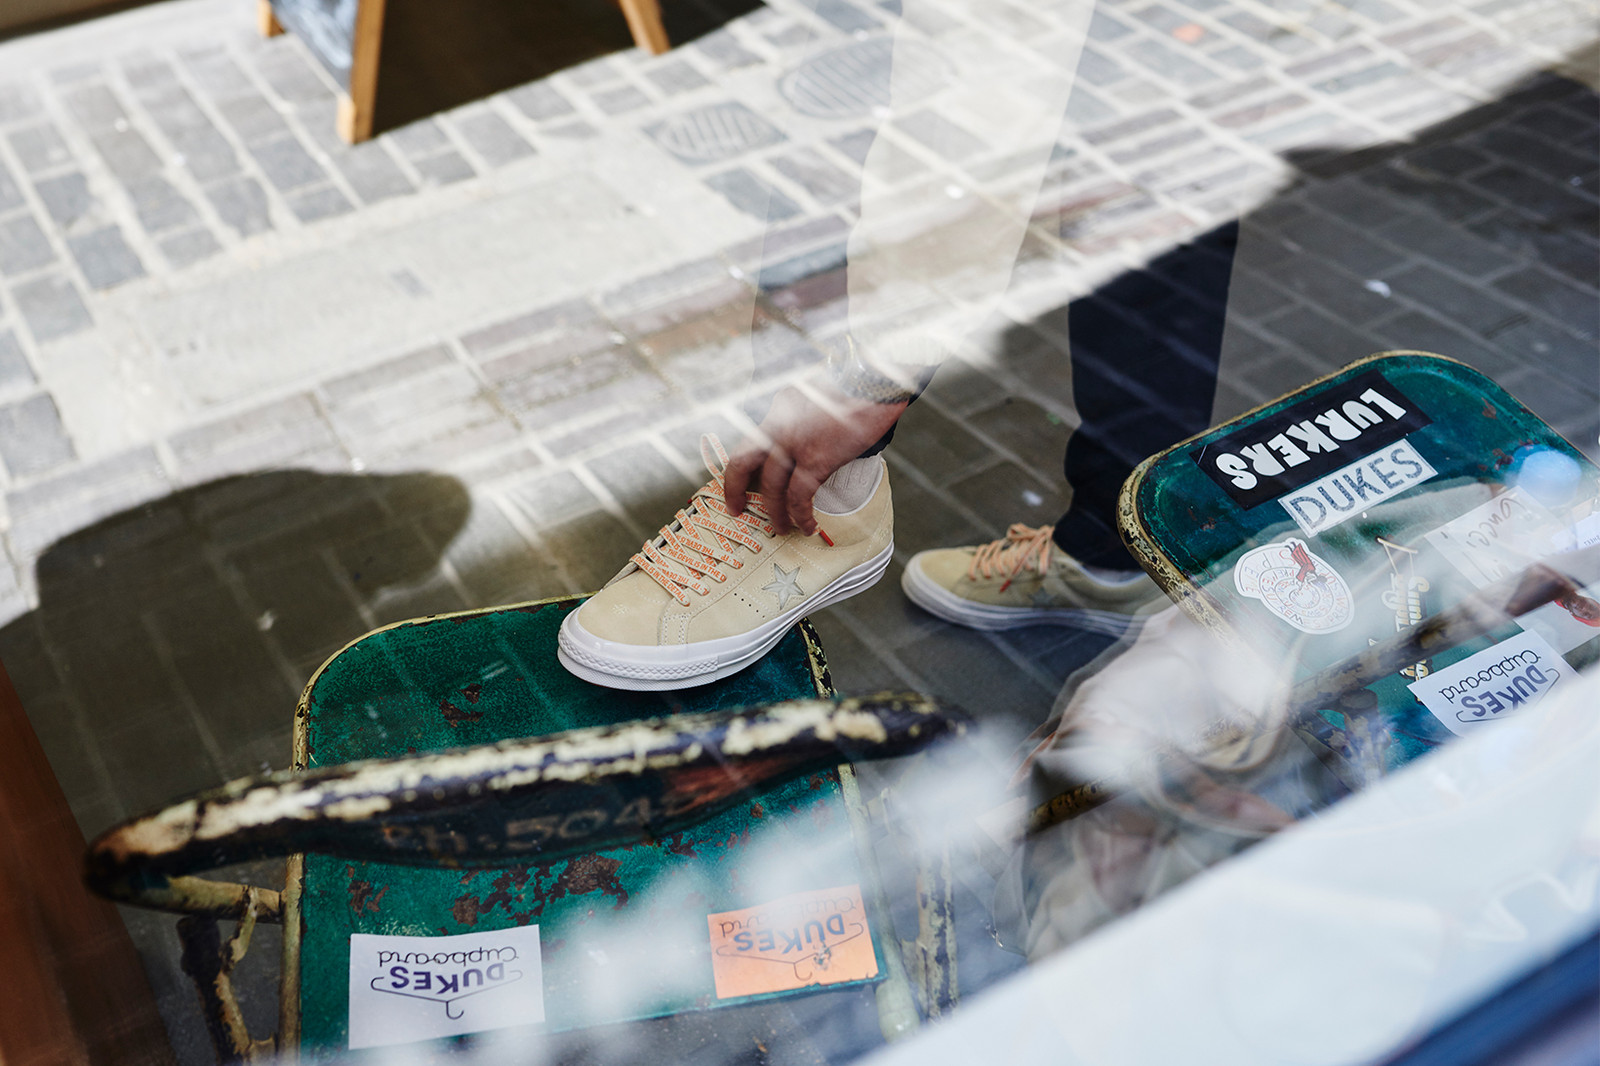 Foot Patrol x Converse One Star Sneaker Launch at Duke's Cupboard Ned Milo